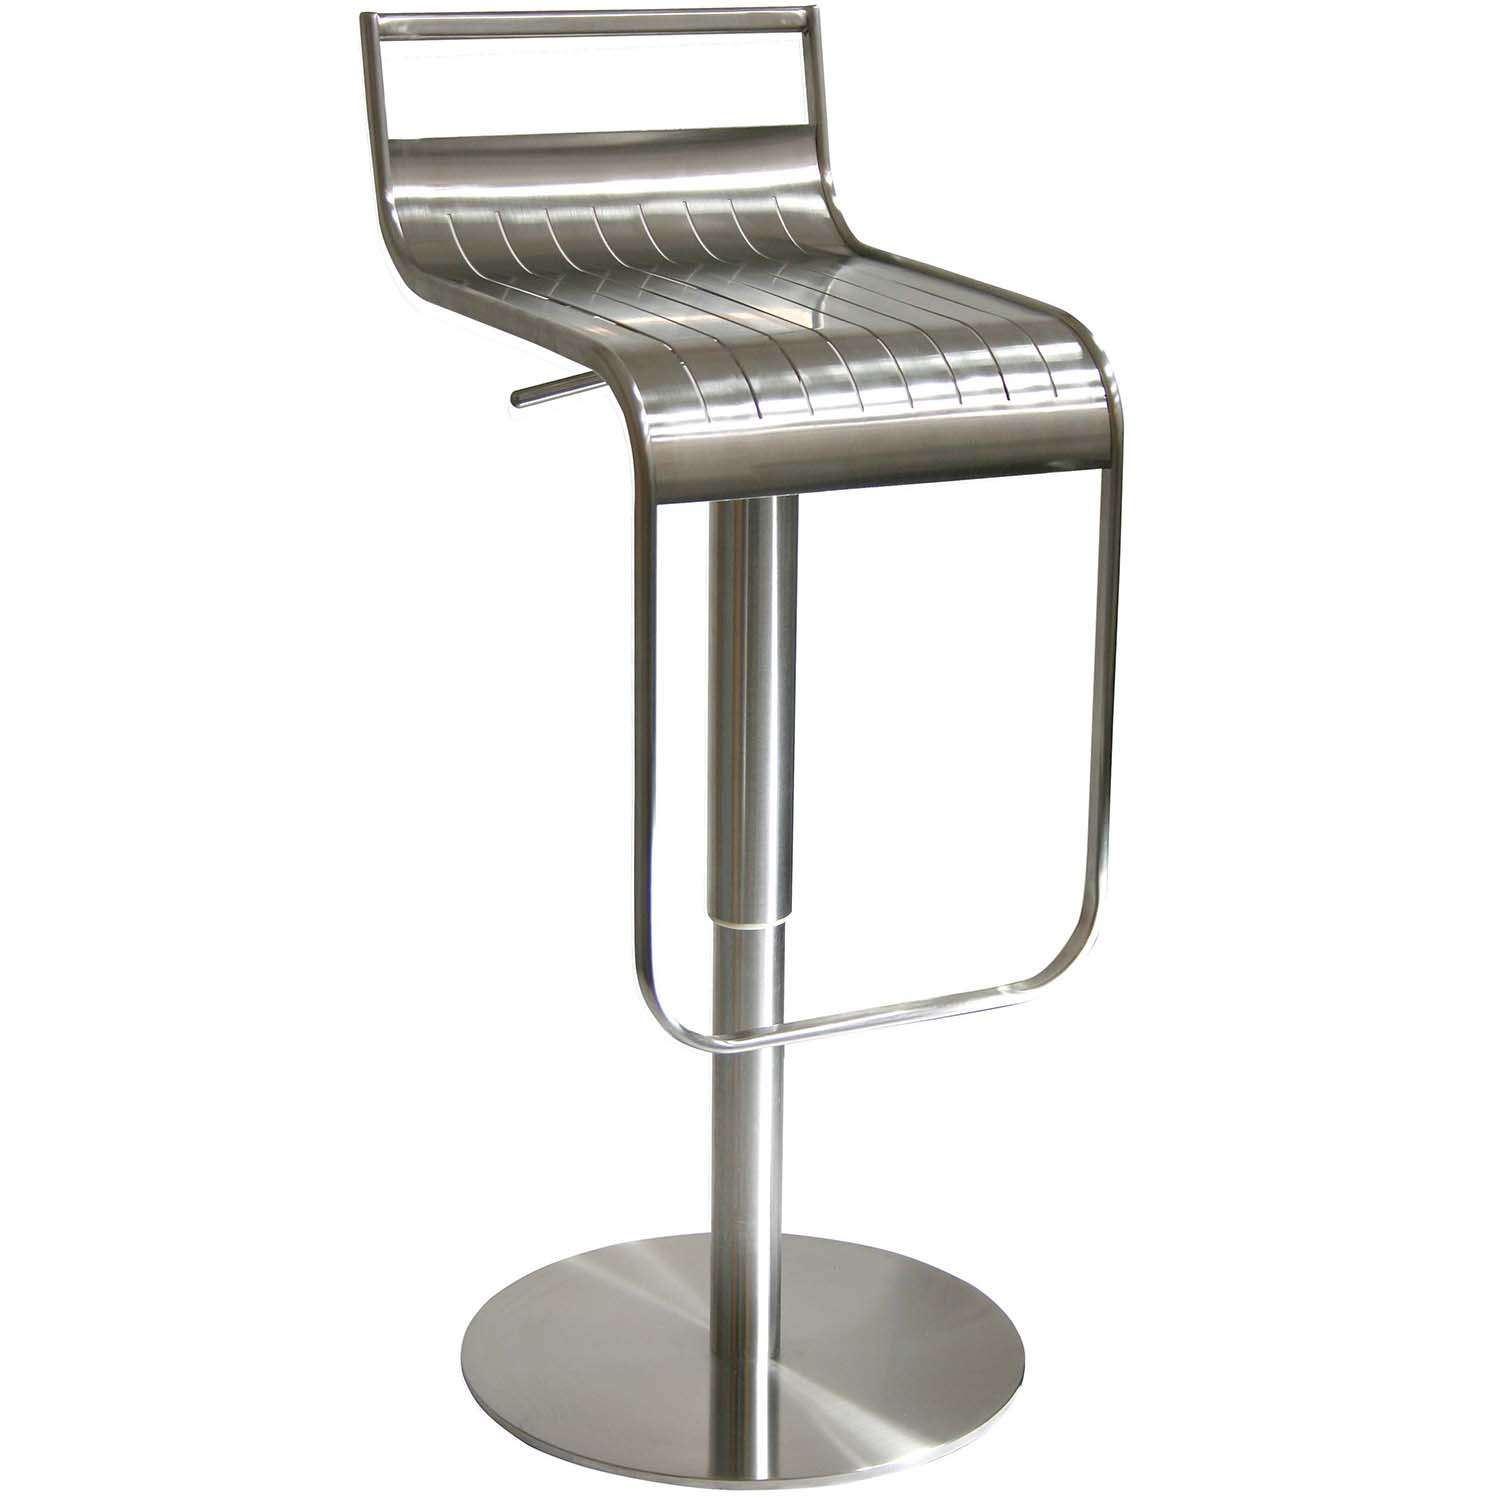 Bsss1 Amerihome Stainless Steel Bar Stool